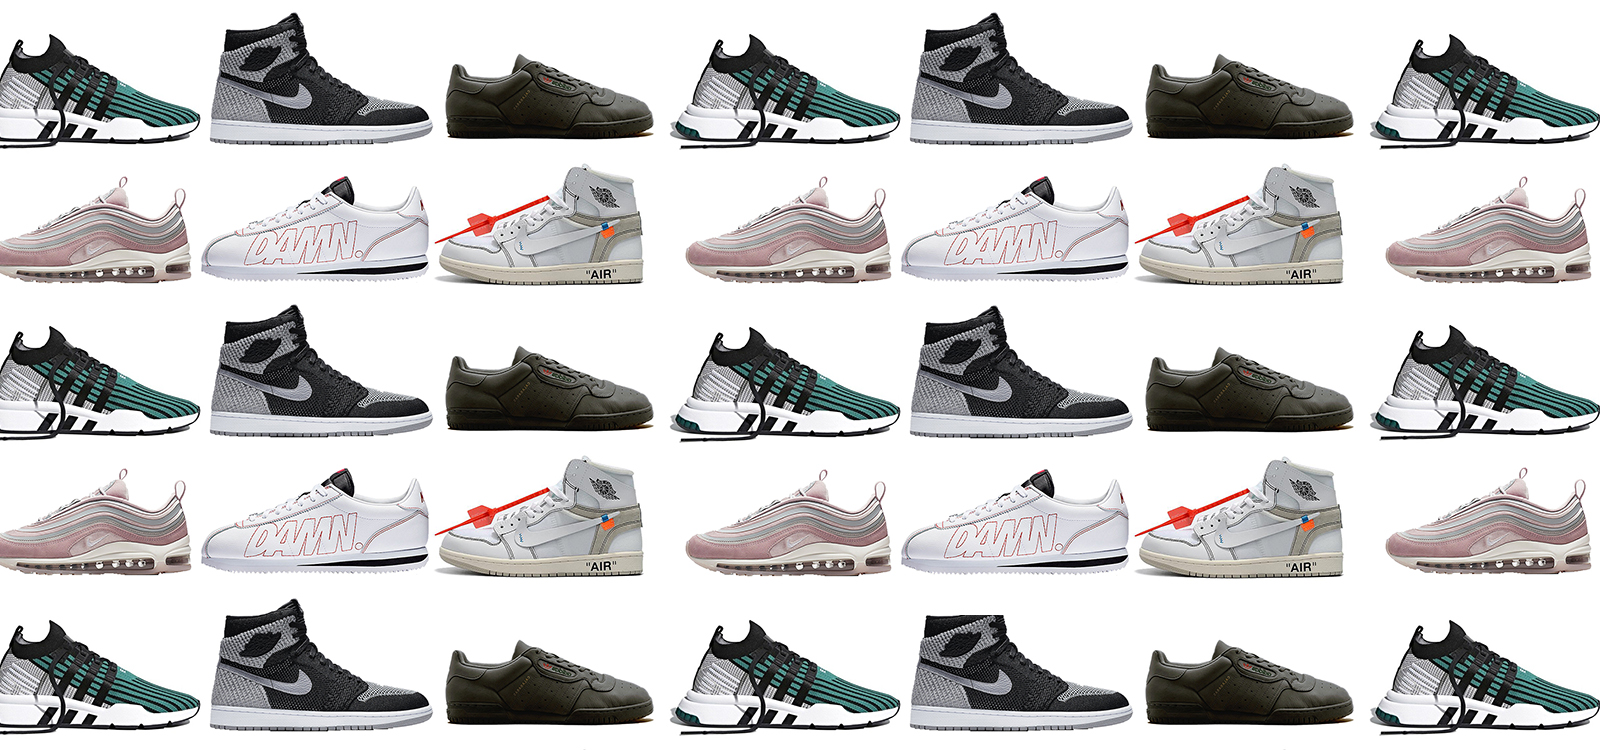 8c1145755192c5 Top Sneaker Releases of 2018 So Far